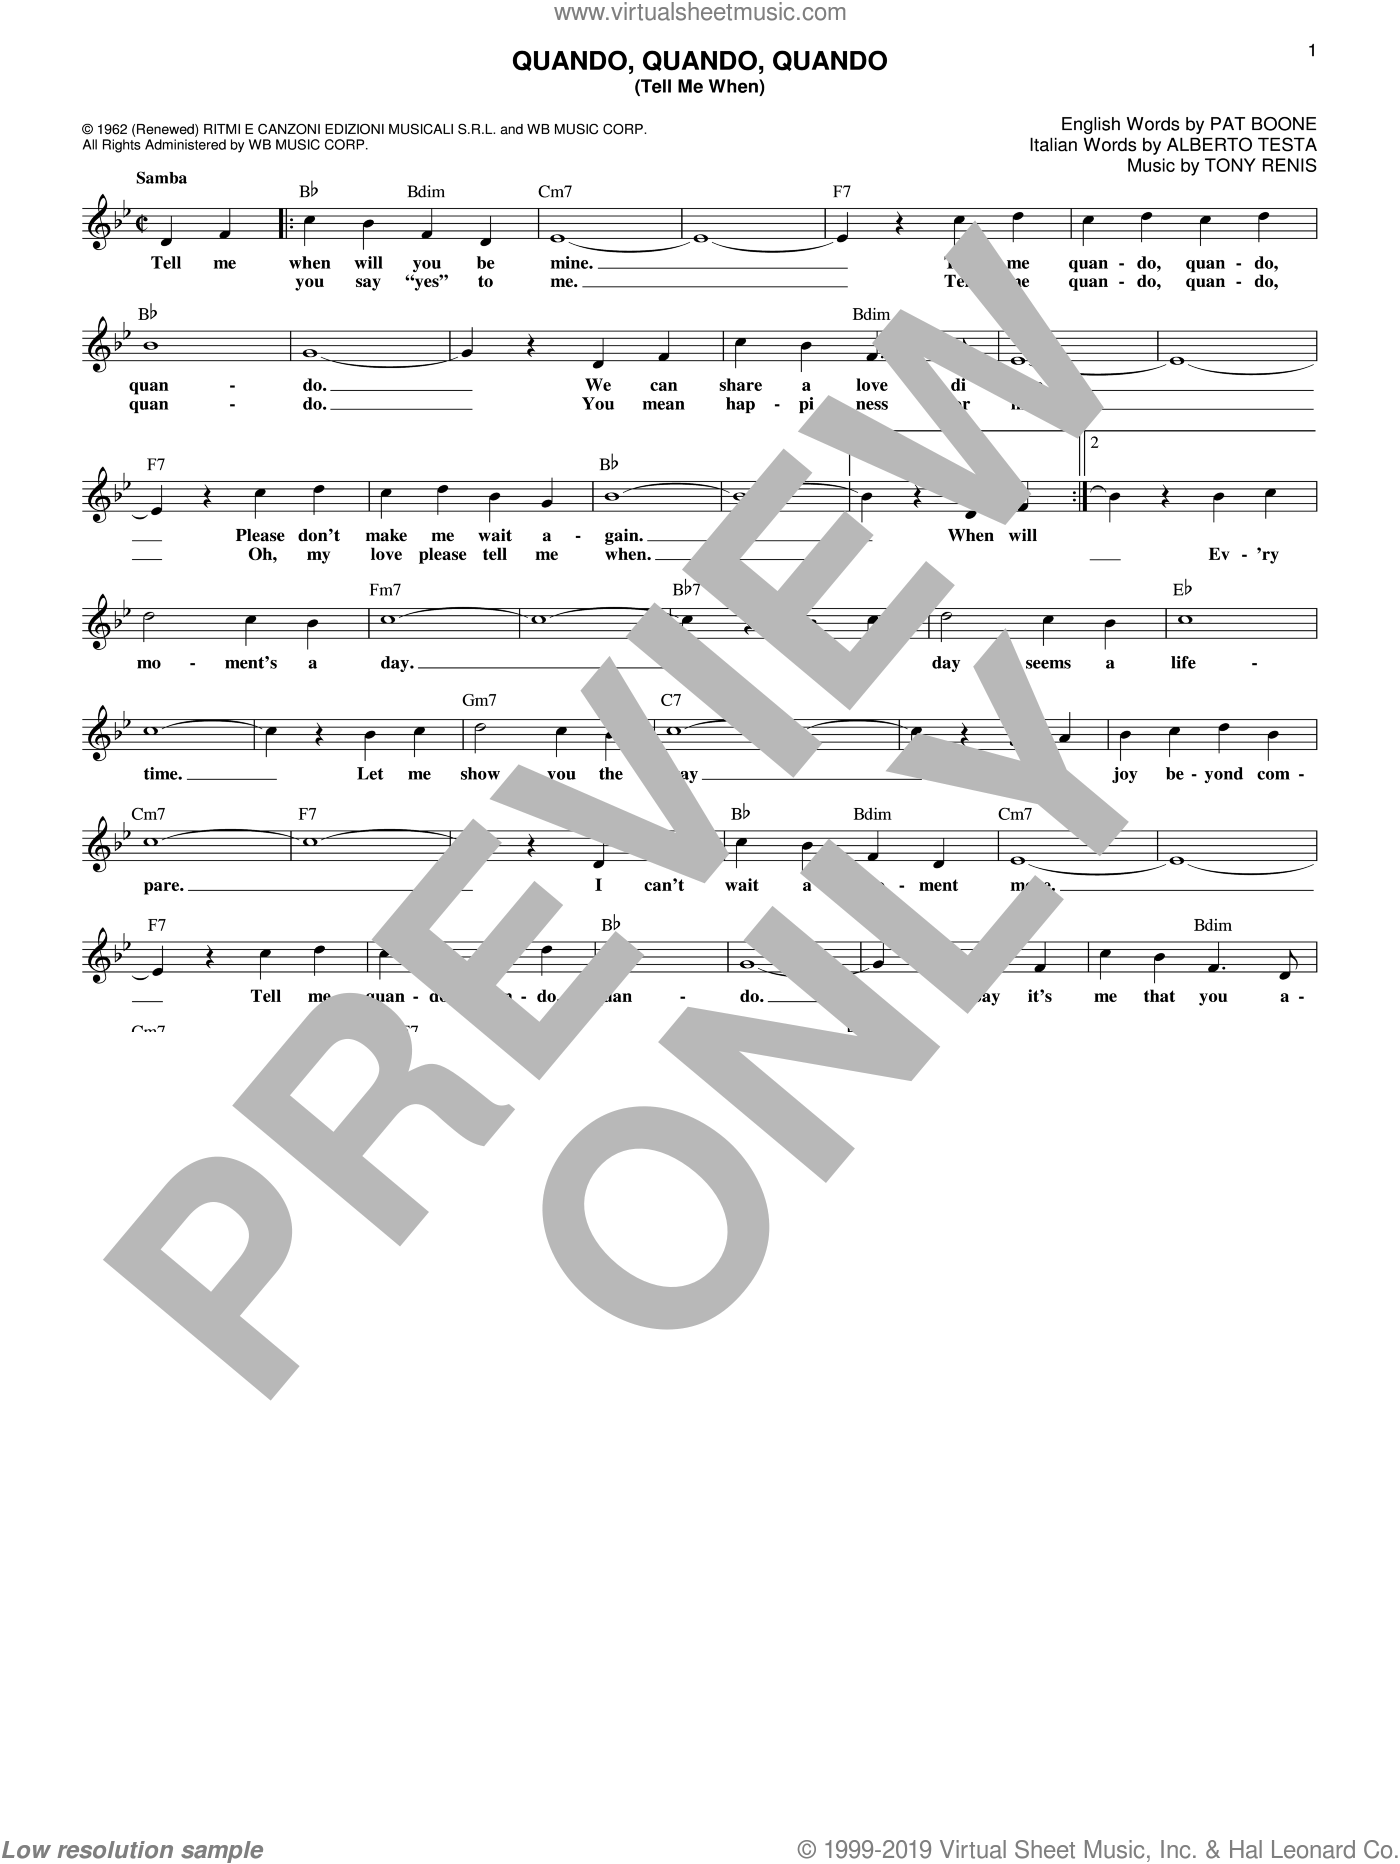 Quando, Quando, Quando (Tell Me When) sheet music for voice and other instruments (fake book) by Alberto Testa, Pat Boone and Tony Renis, intermediate skill level